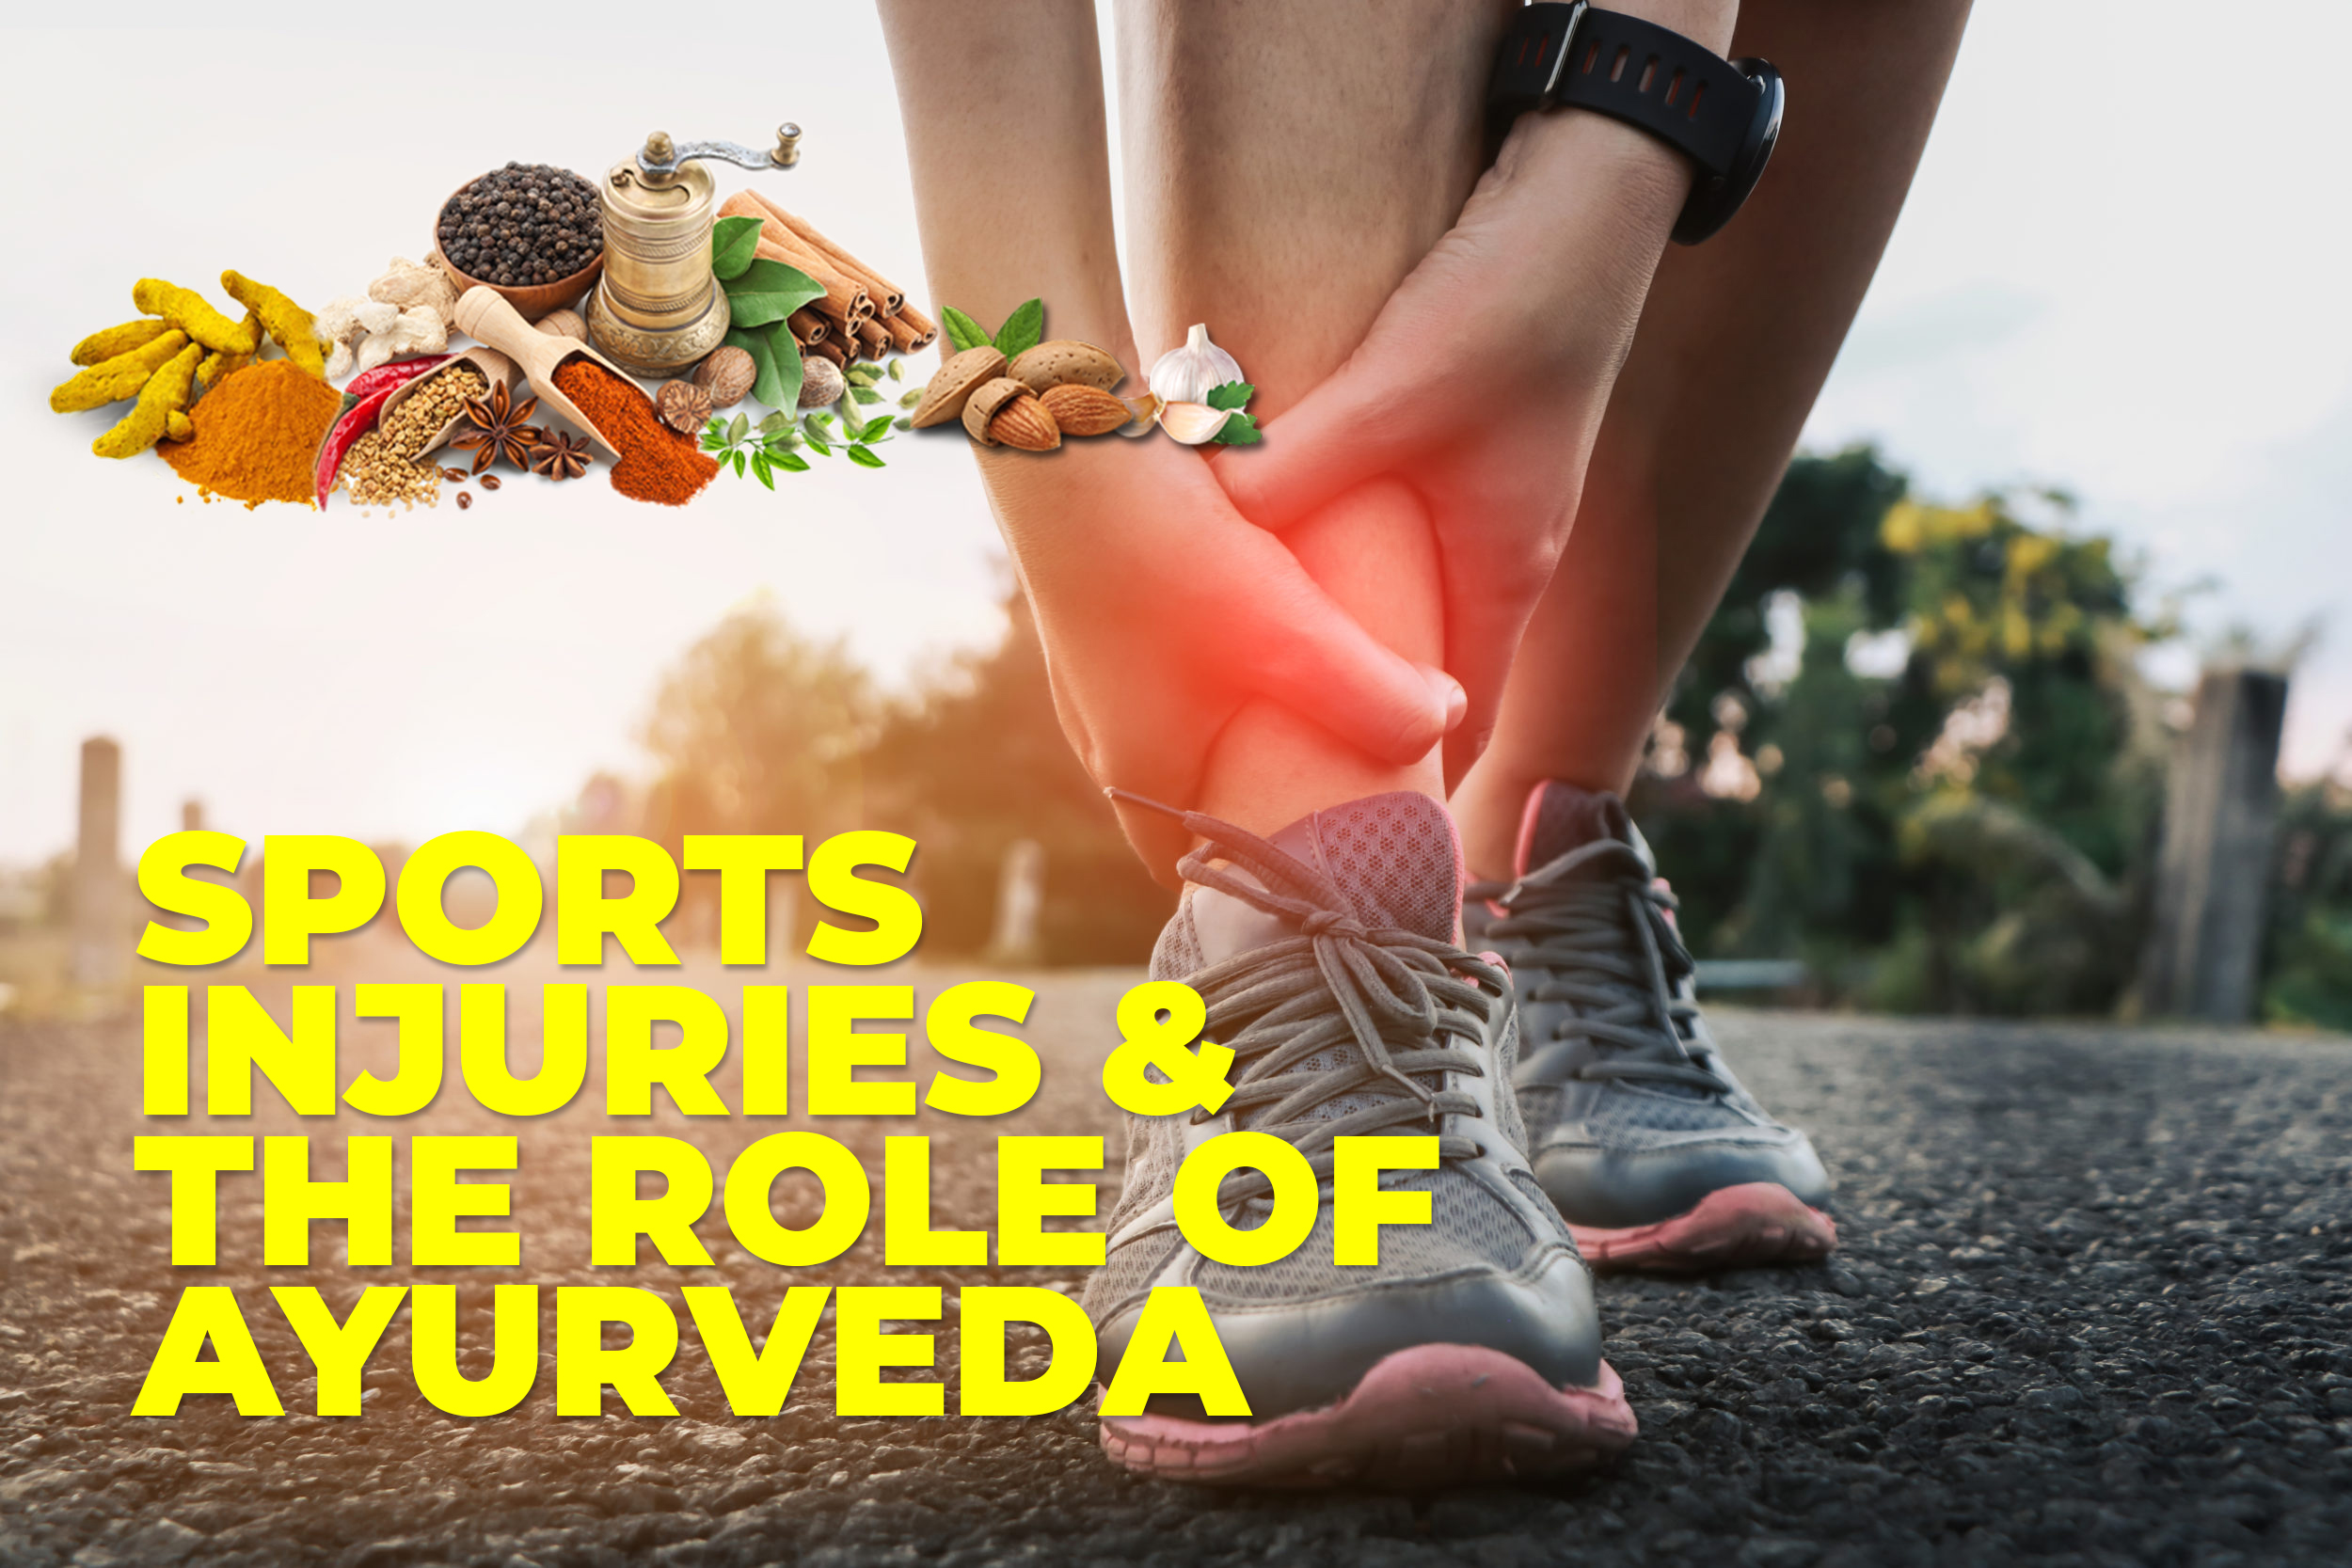 Sports injuries & the role of Ayurveda